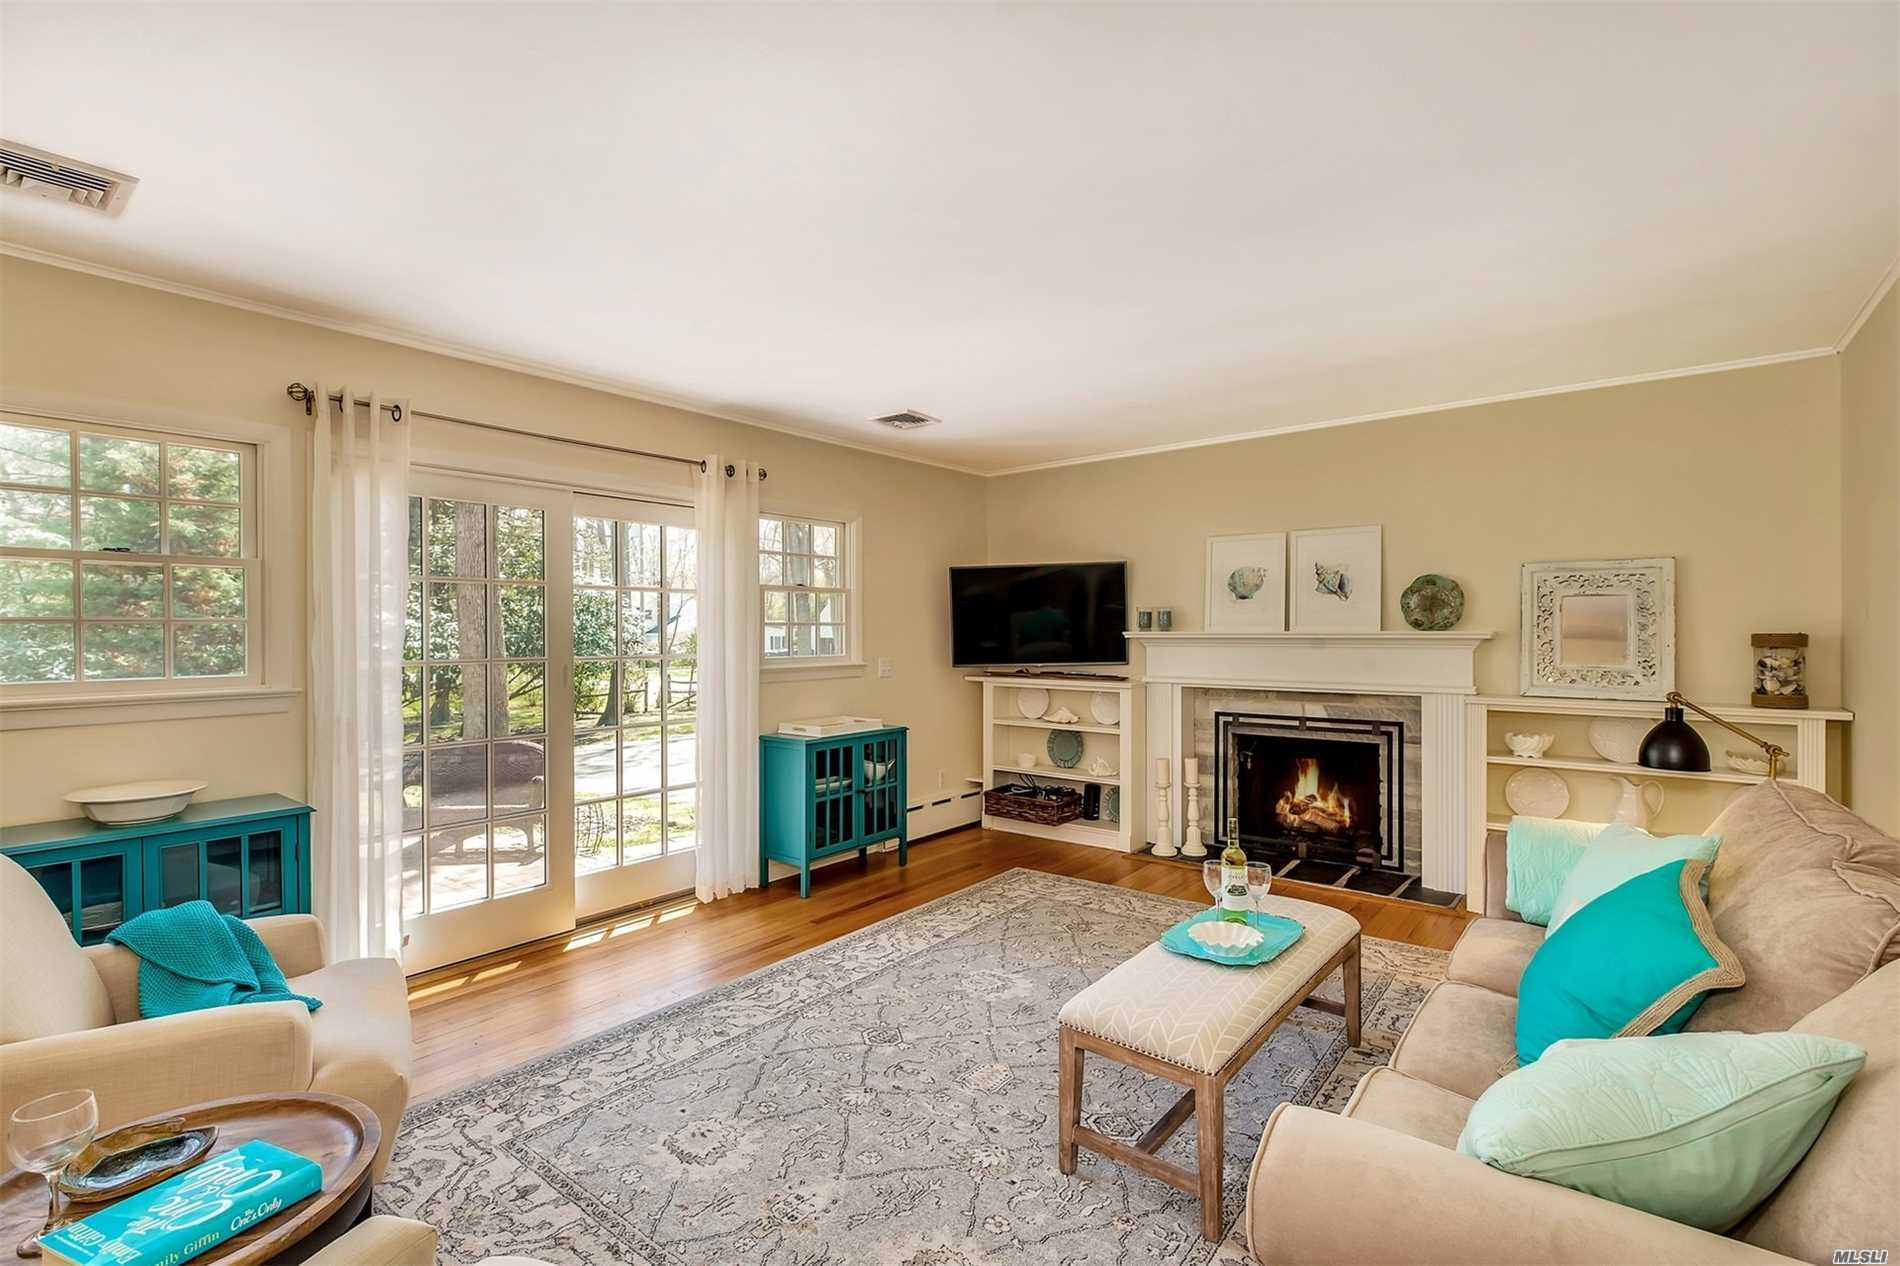 New to the Market! Totally up to date and ready for you to enjoy summer!  Great room with fireplace - combined living room and dining room. Three bedrooms, two new baths, update kitchen, large clean basement for playroom, mancave, gym, etc. Walk to bay boat launch and beach, walk to Southold Yacht Club, walk to Southold hamlet - shopping, public transportation, and dining. Perfect summer getaway or year round living.